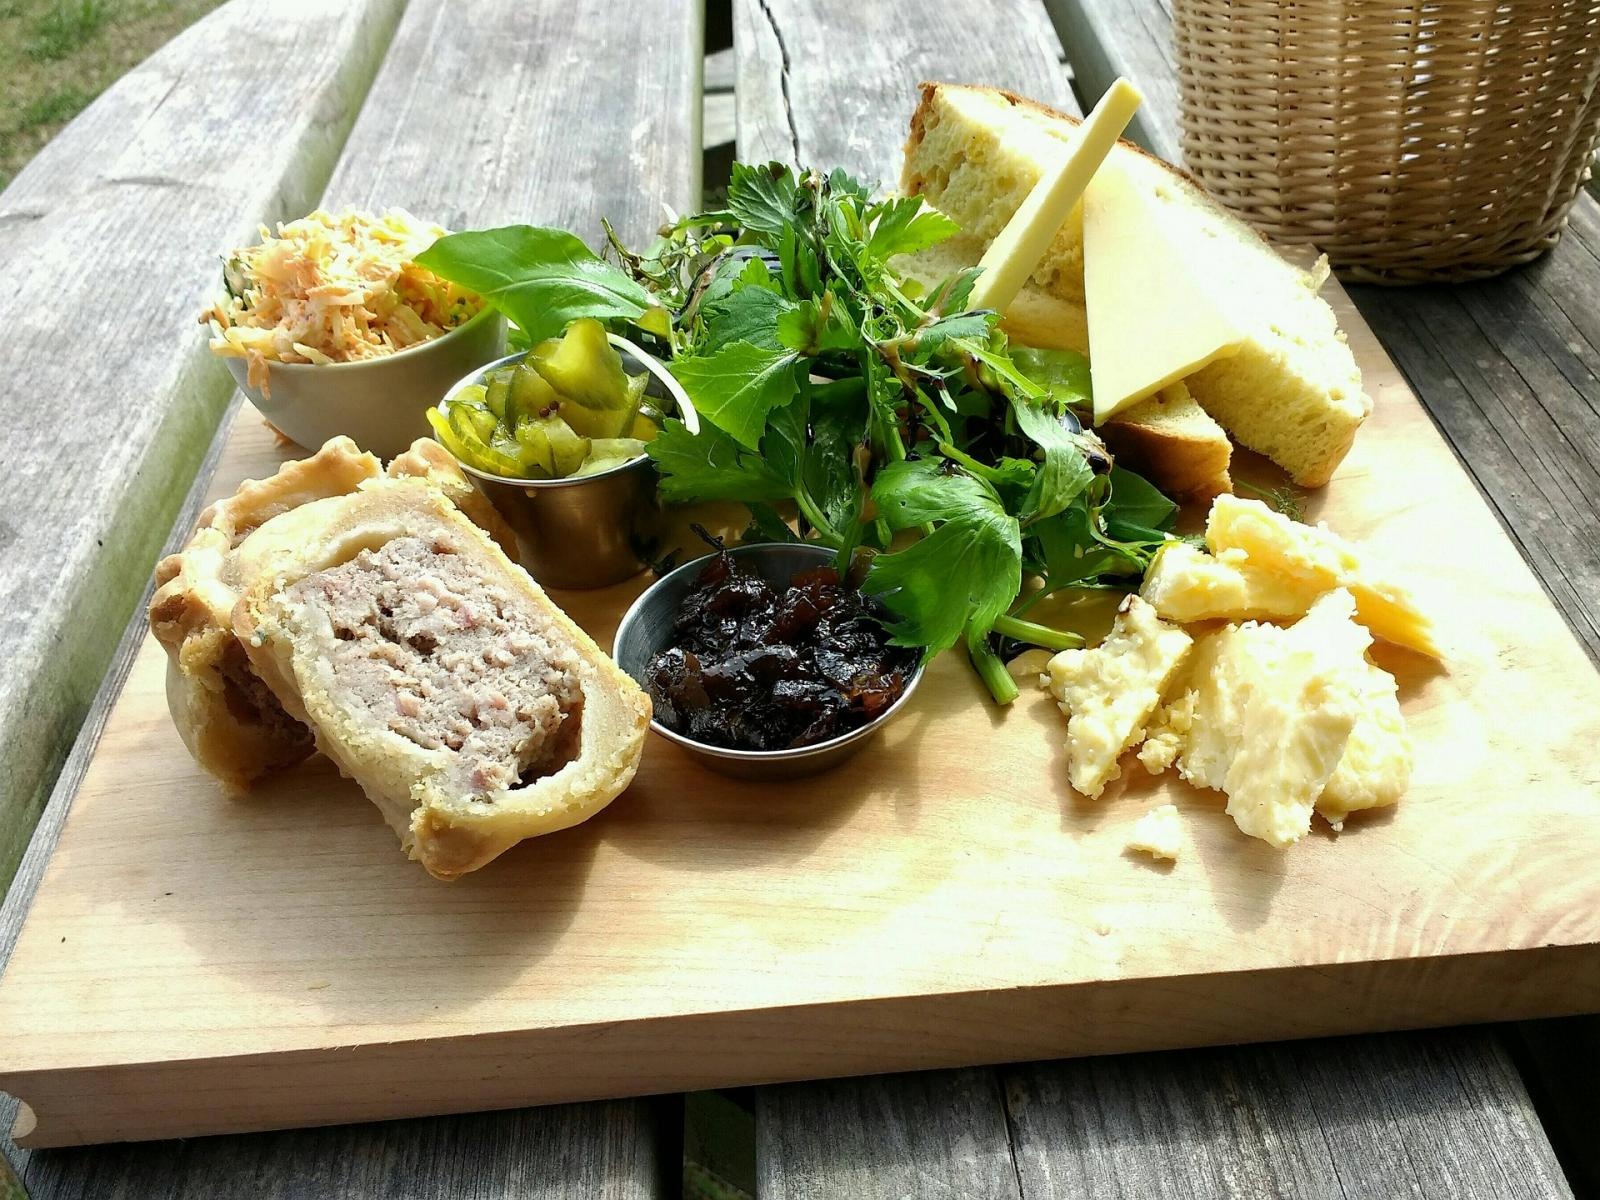 Pork pie and salad. Photo credit: Pixabay